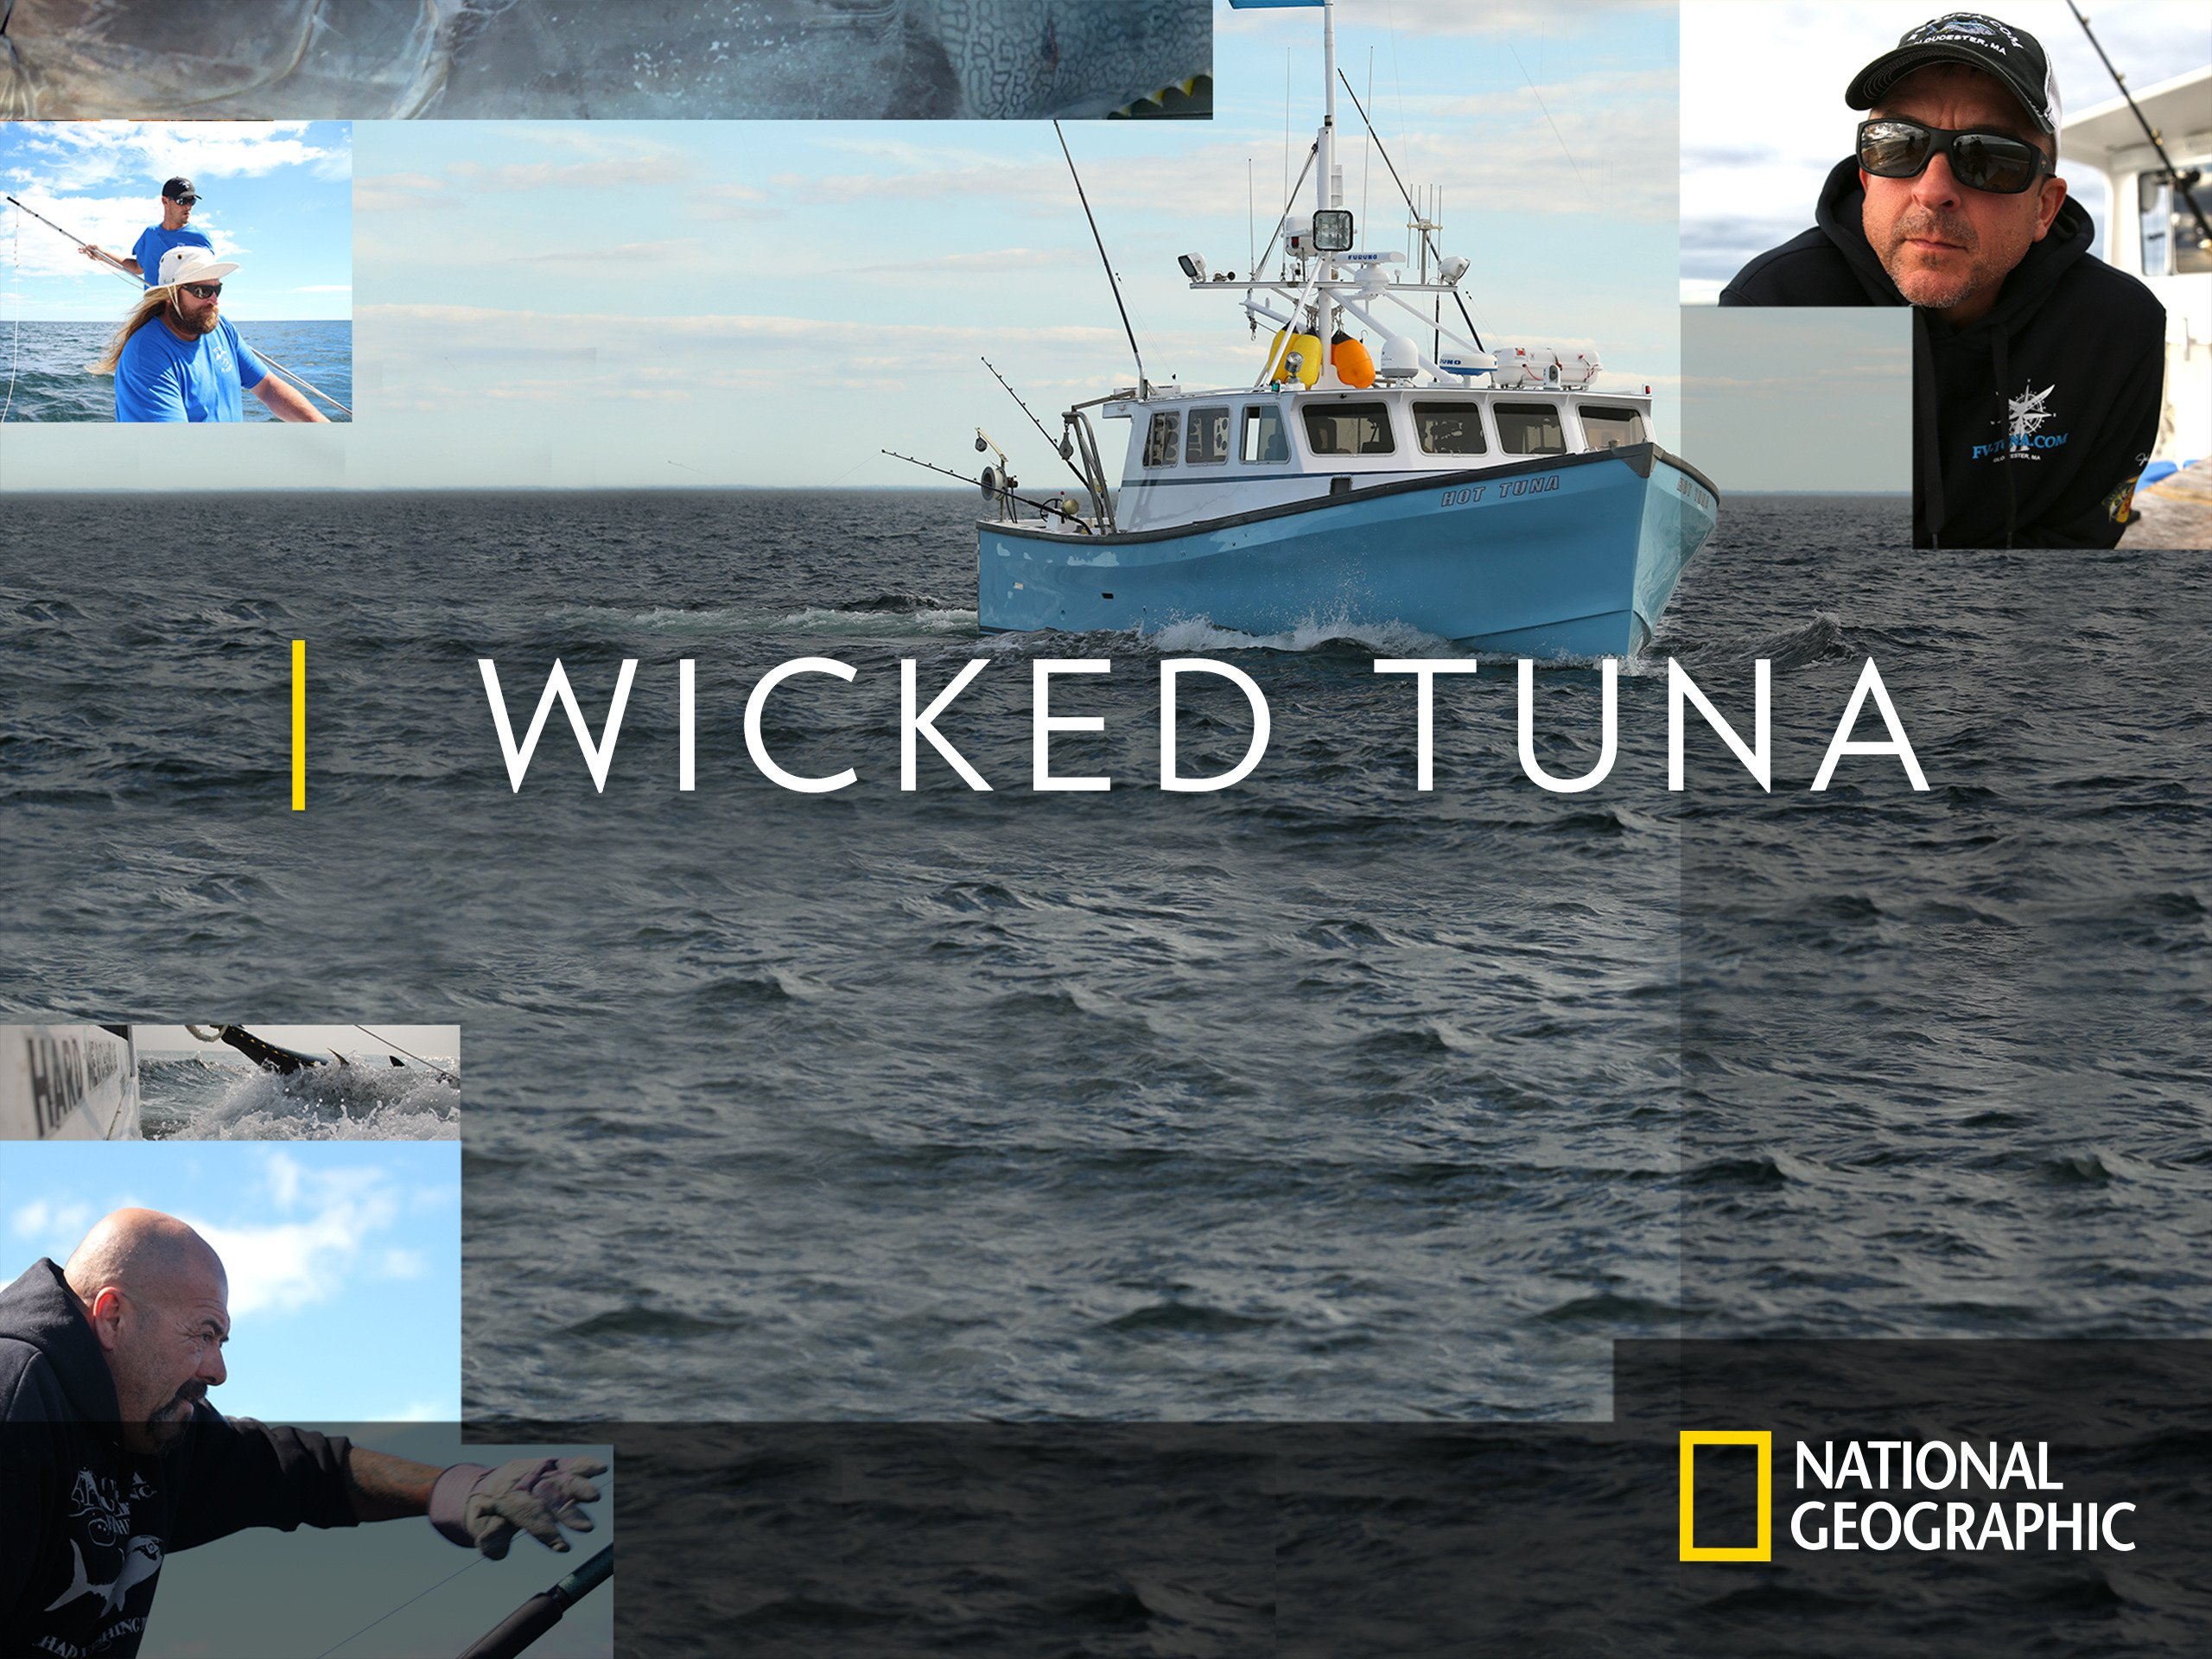 Wicked tuna season 2 complete torrent download